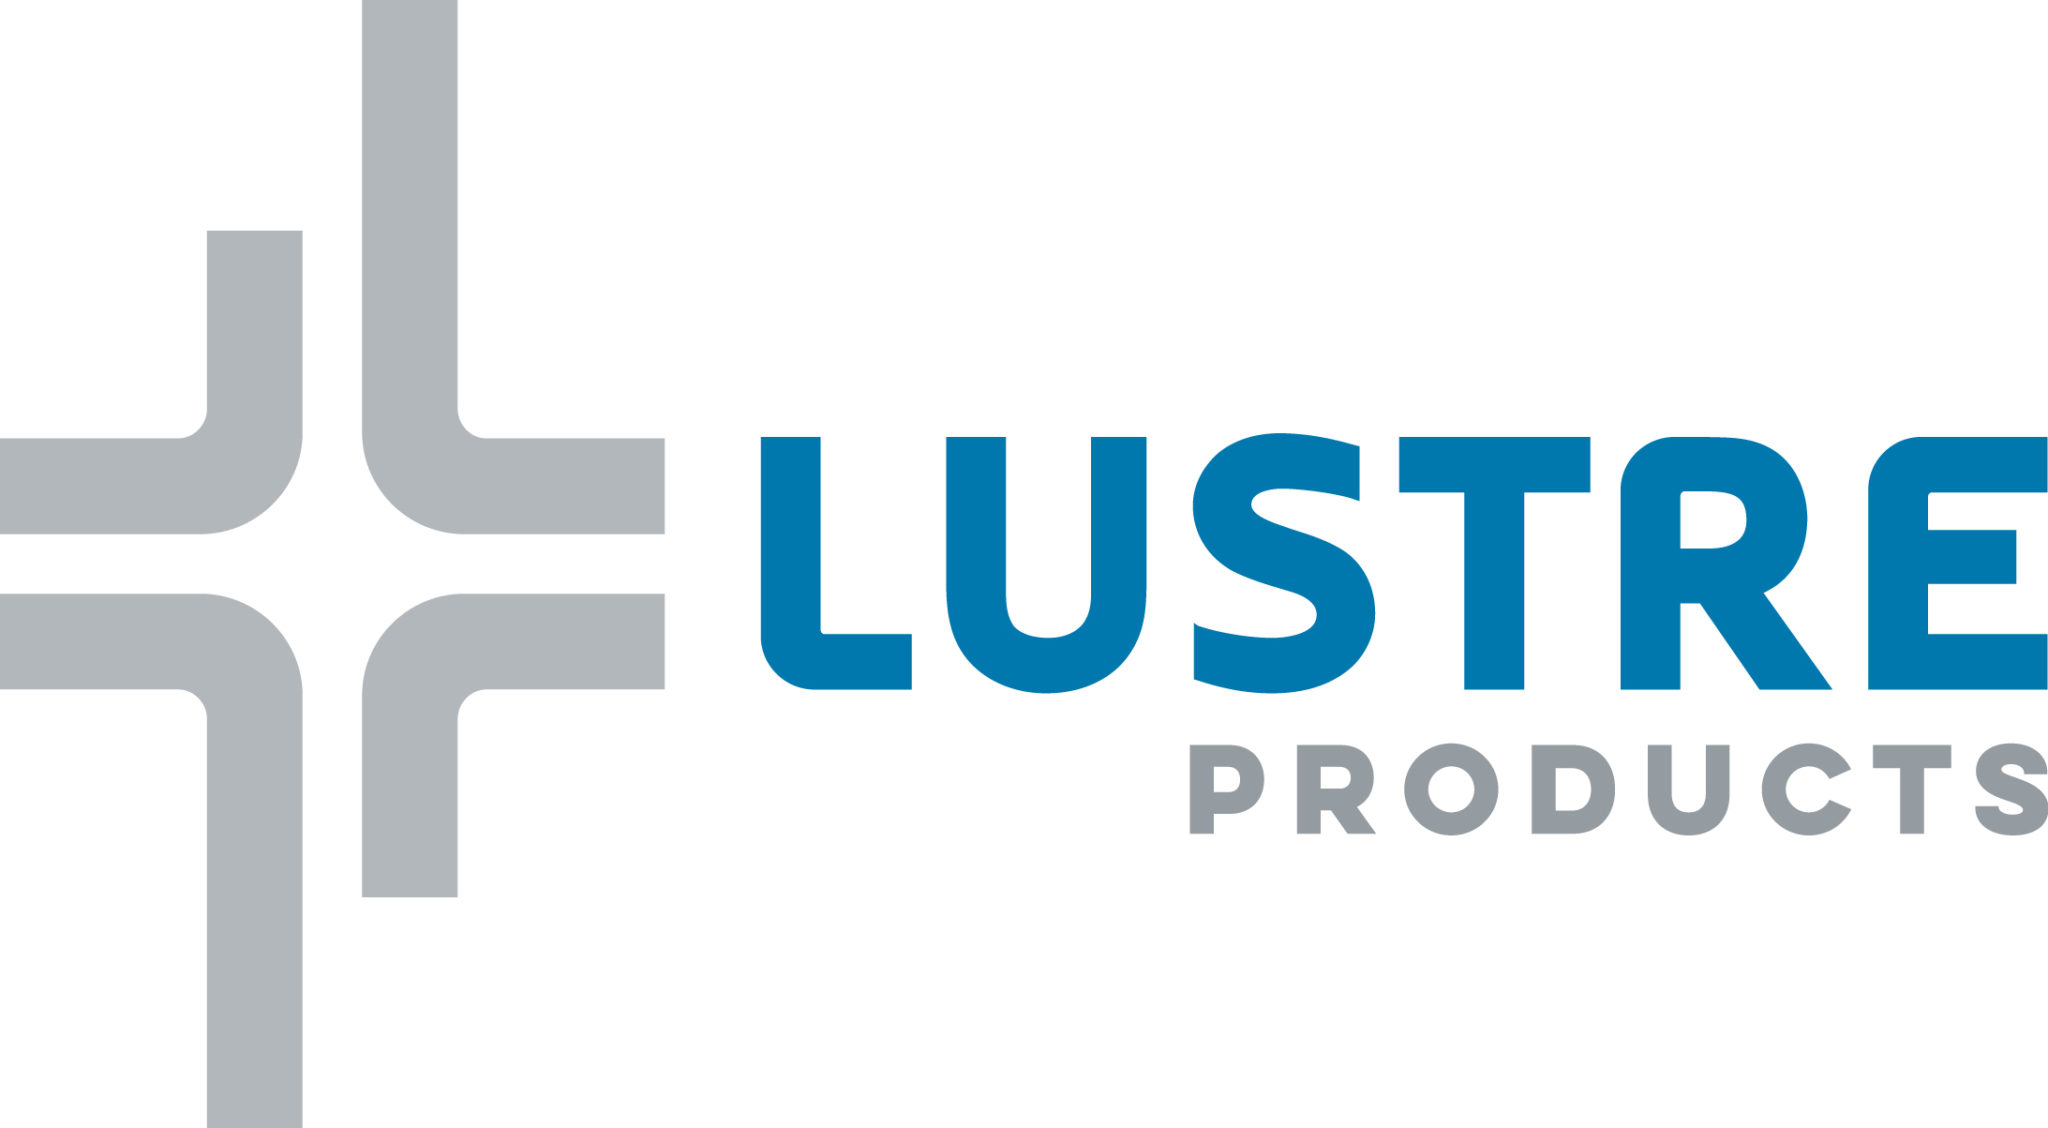 Lustre Products